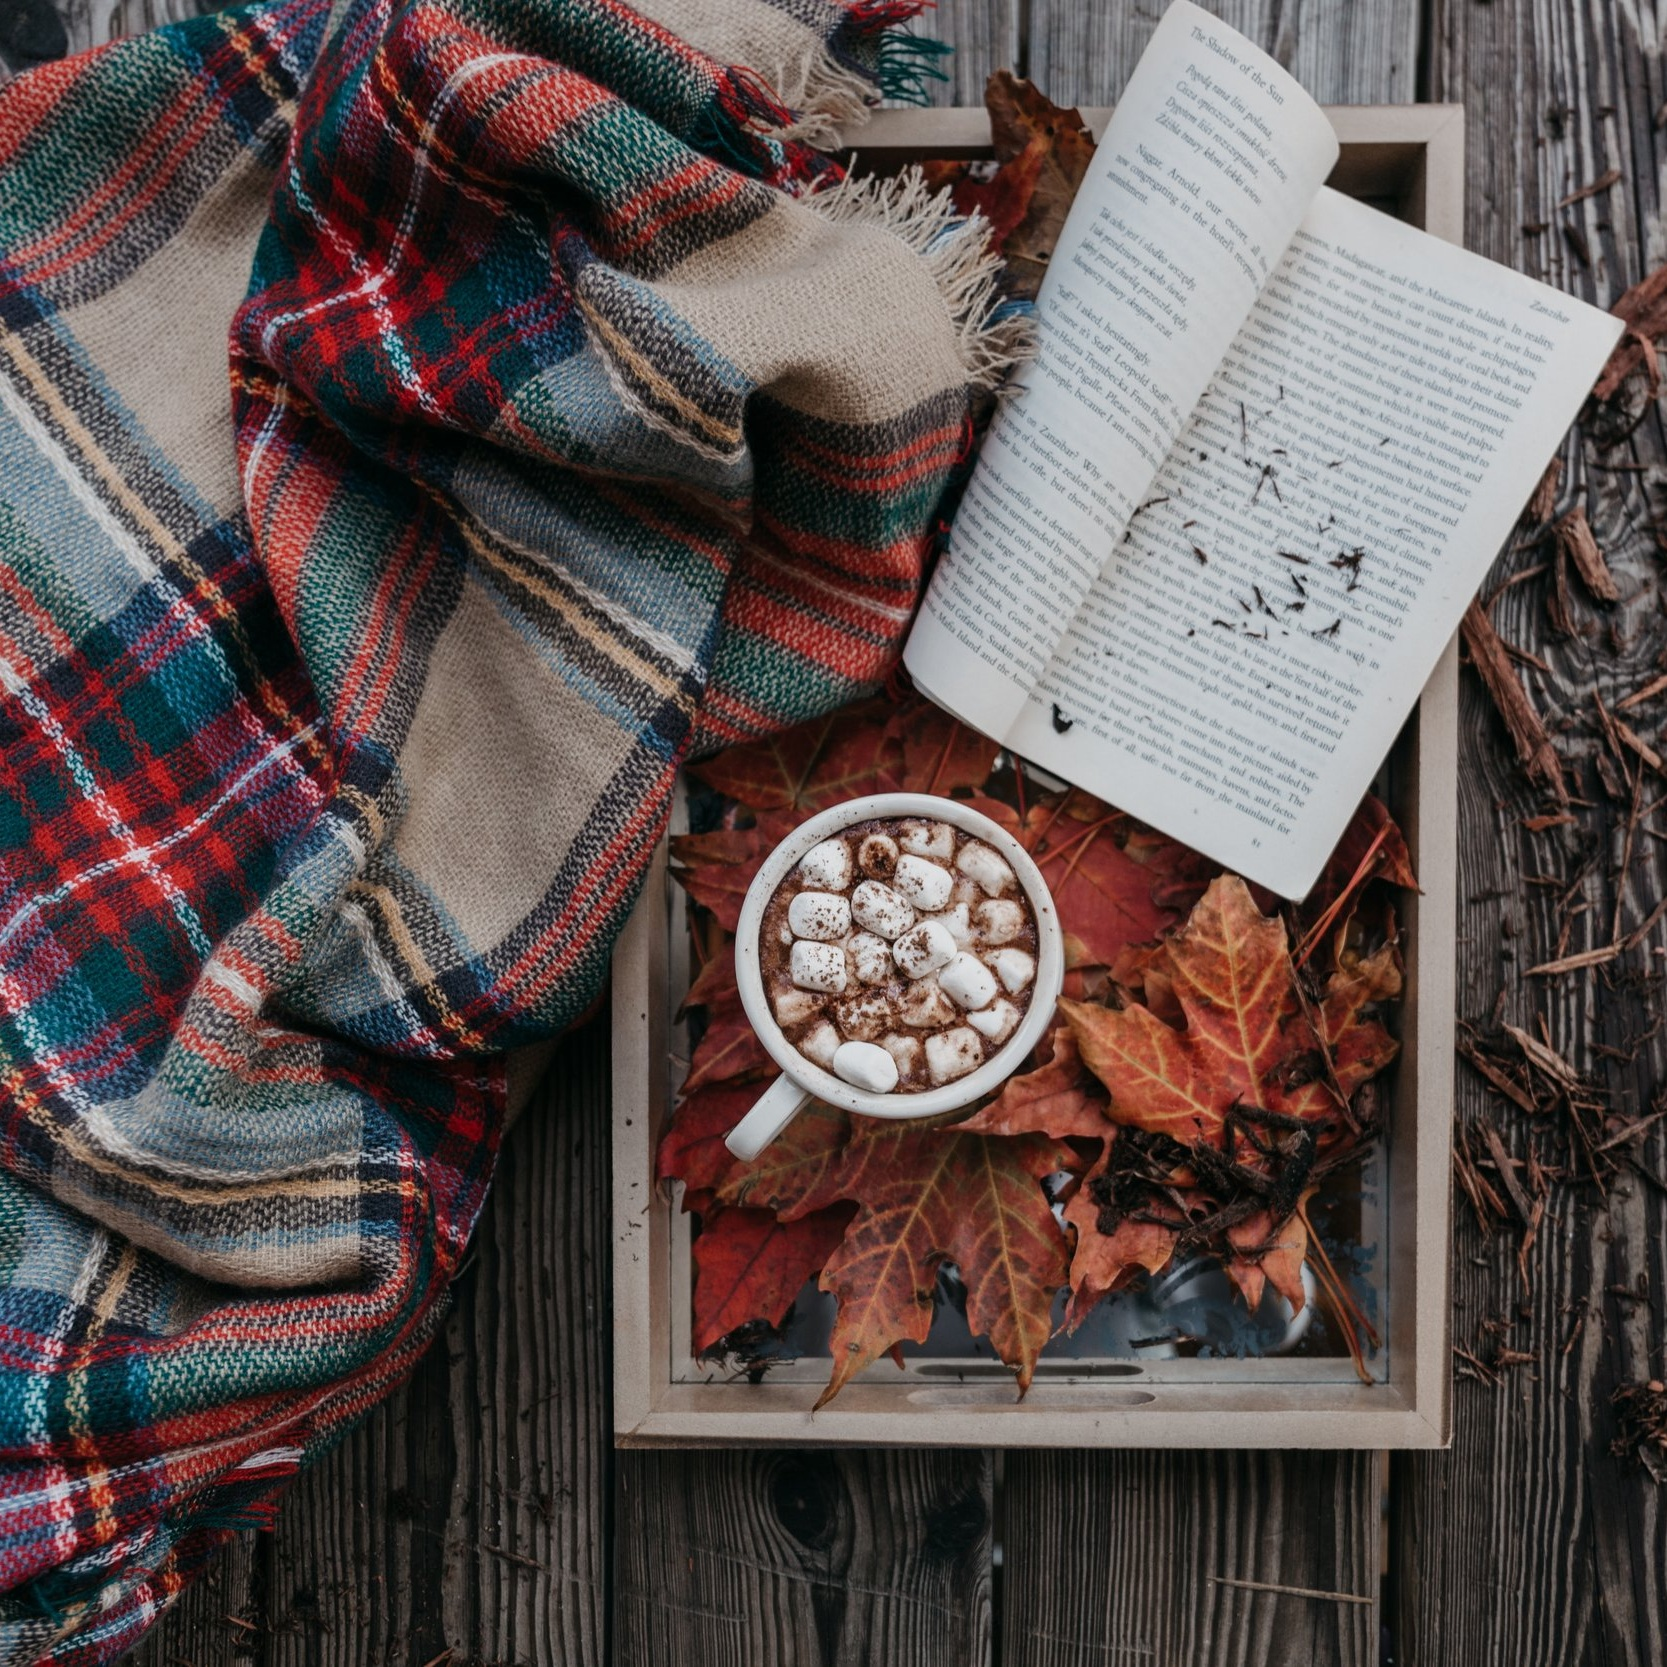 4 - My favorite season is fall and I love nothing more than curling up with a book, a cup of coffee, and a cozy blanket.